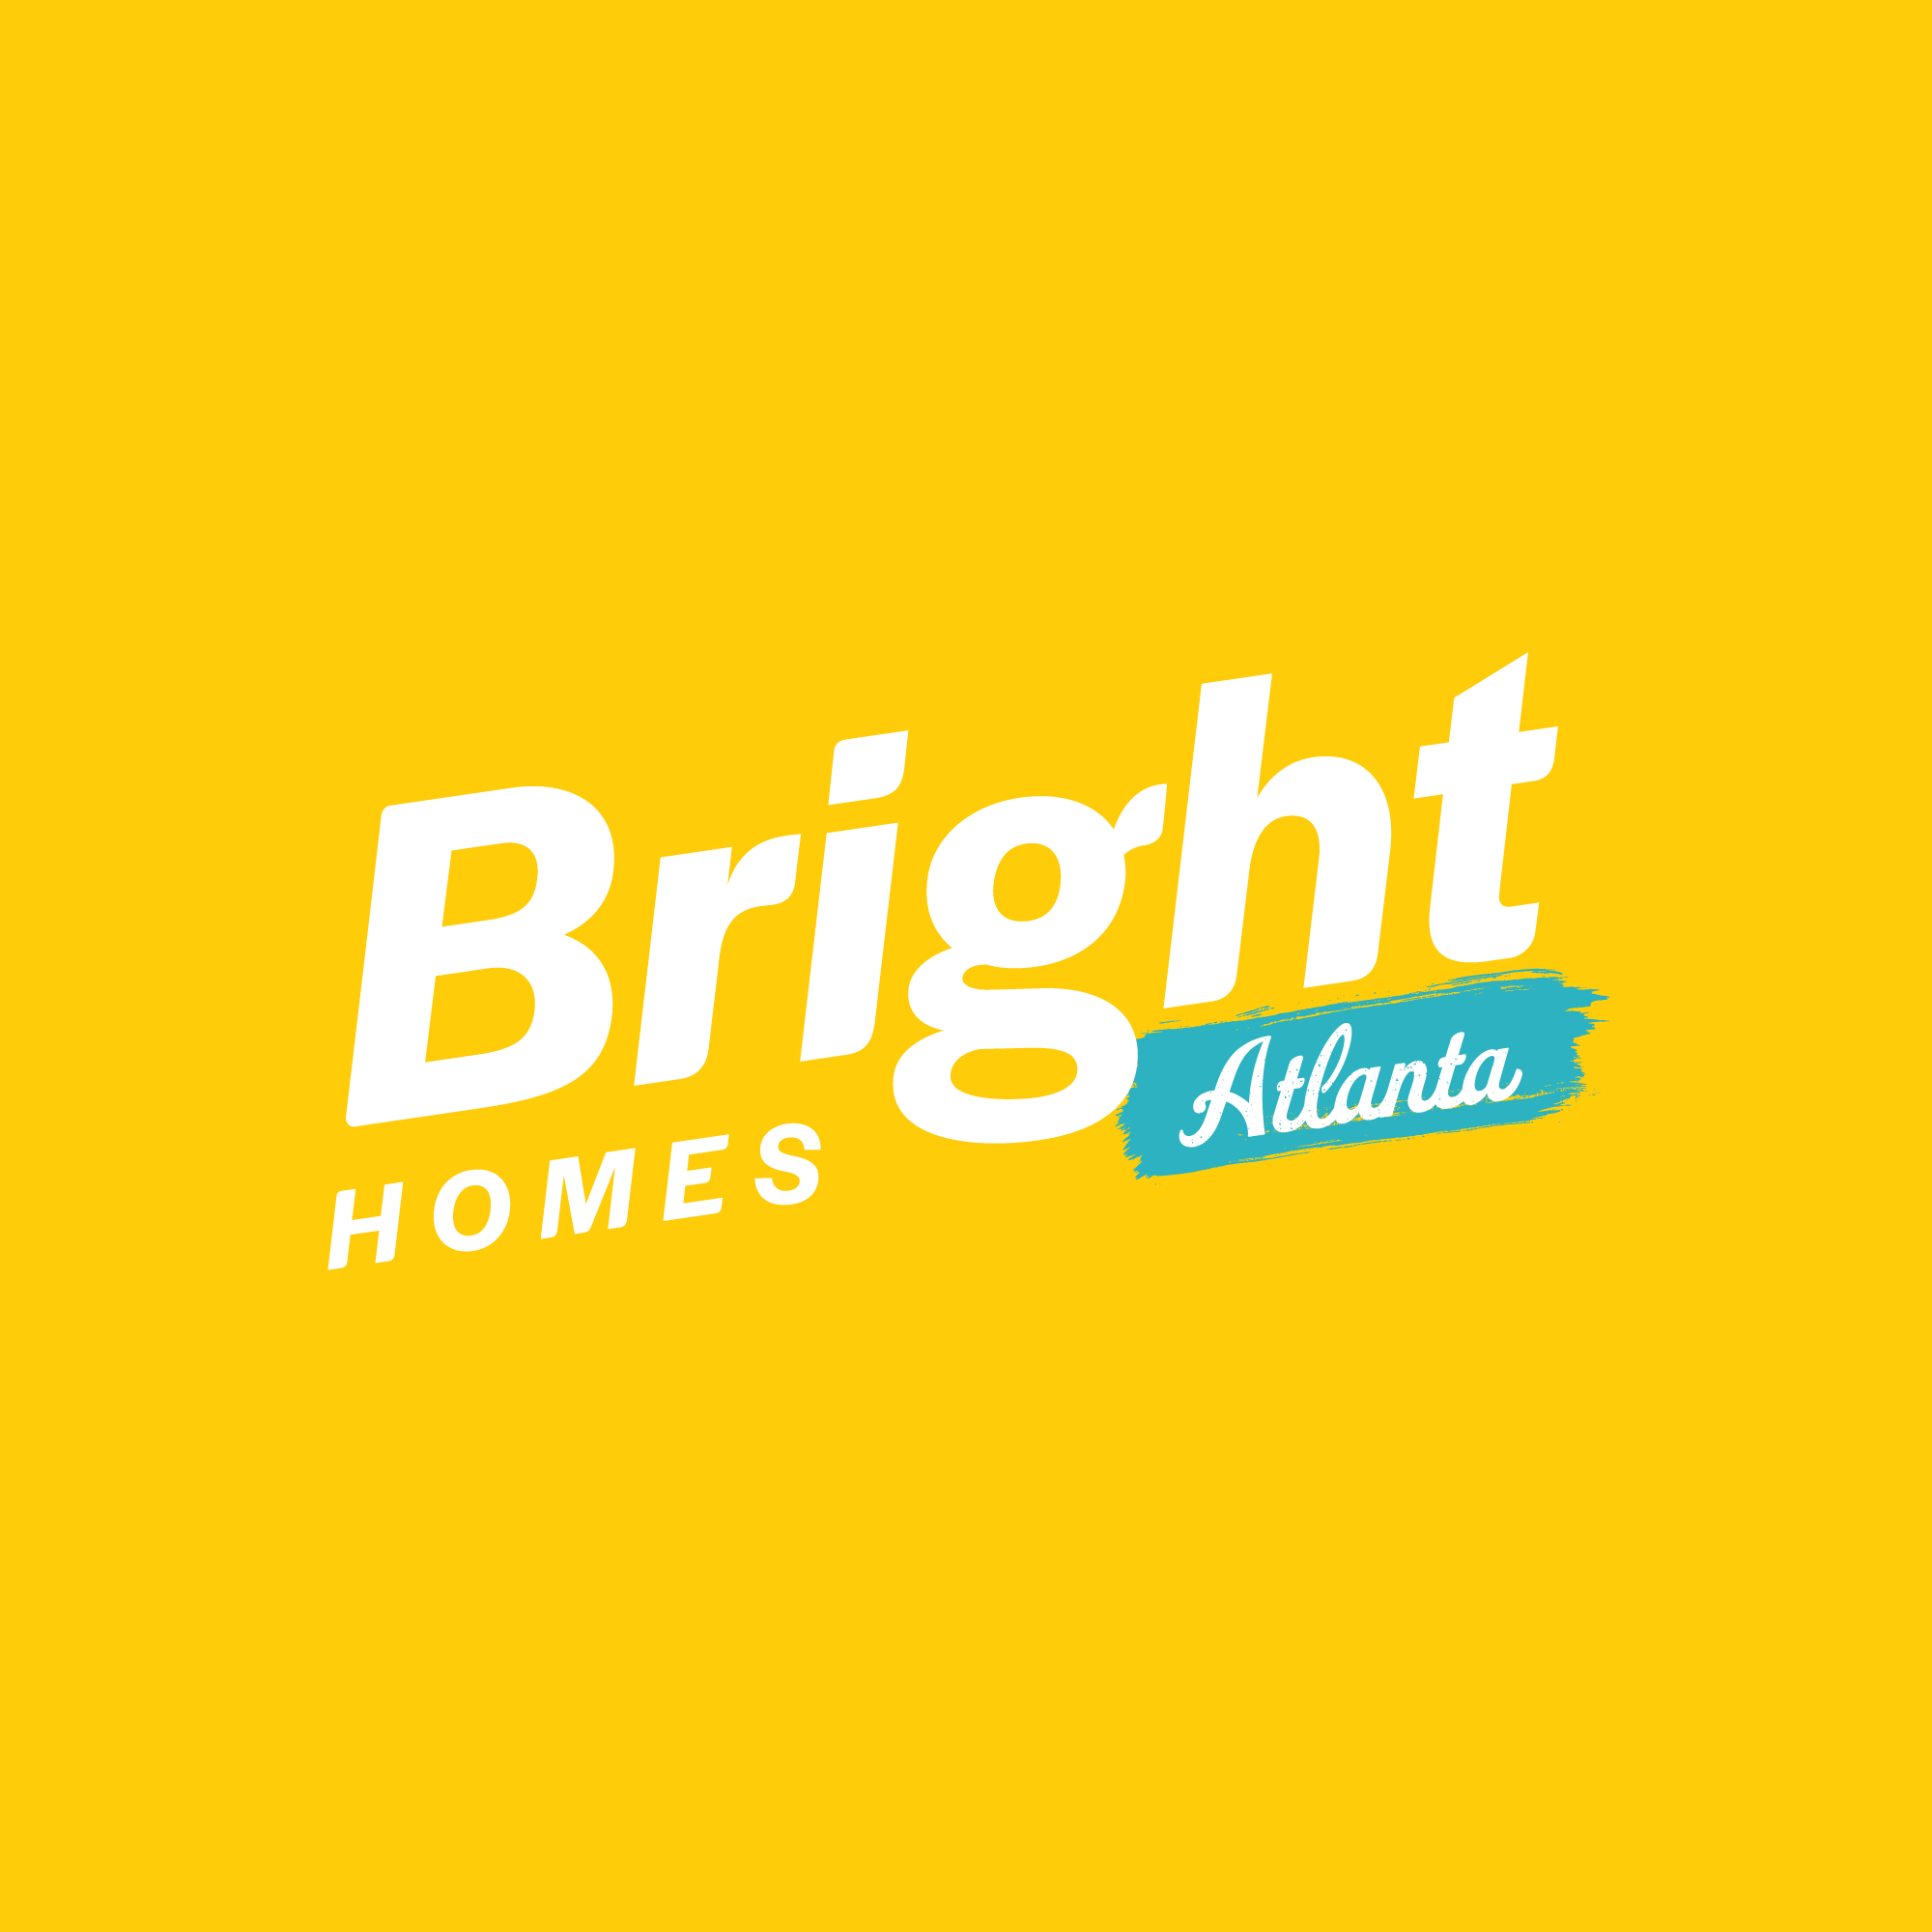 Bright Homes Atlanta